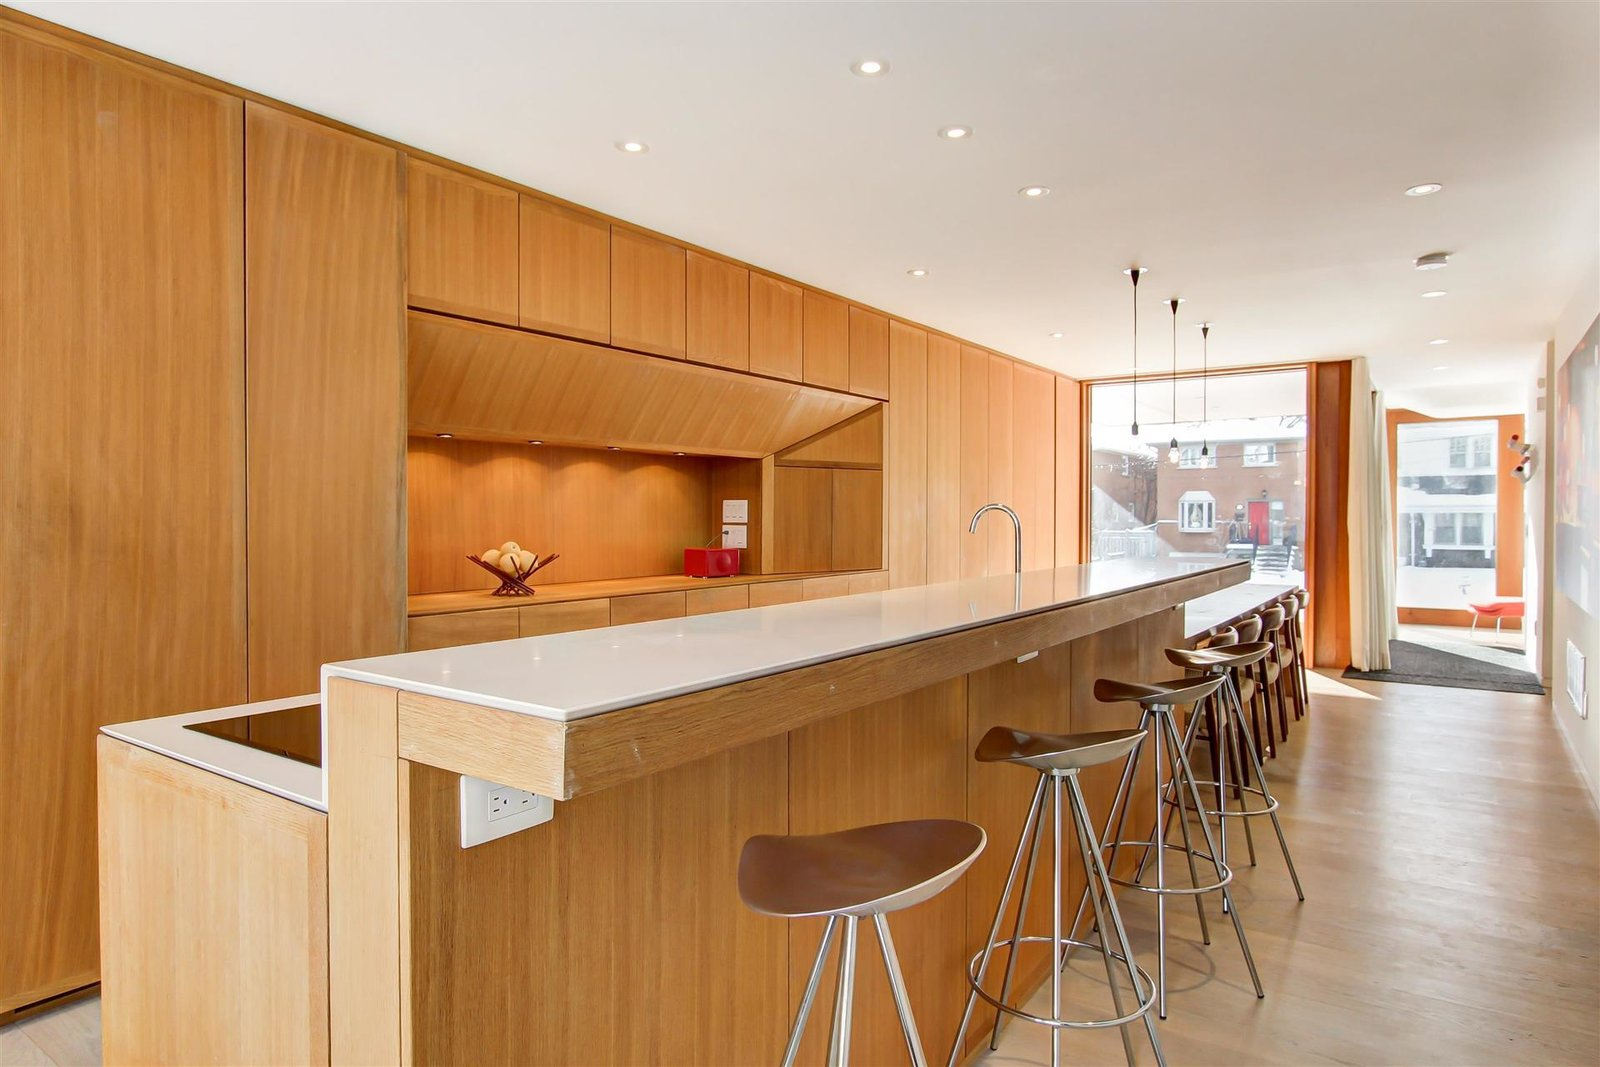 Kitchen, Wood Cabinet, and Wood Counter  The Blantyre House